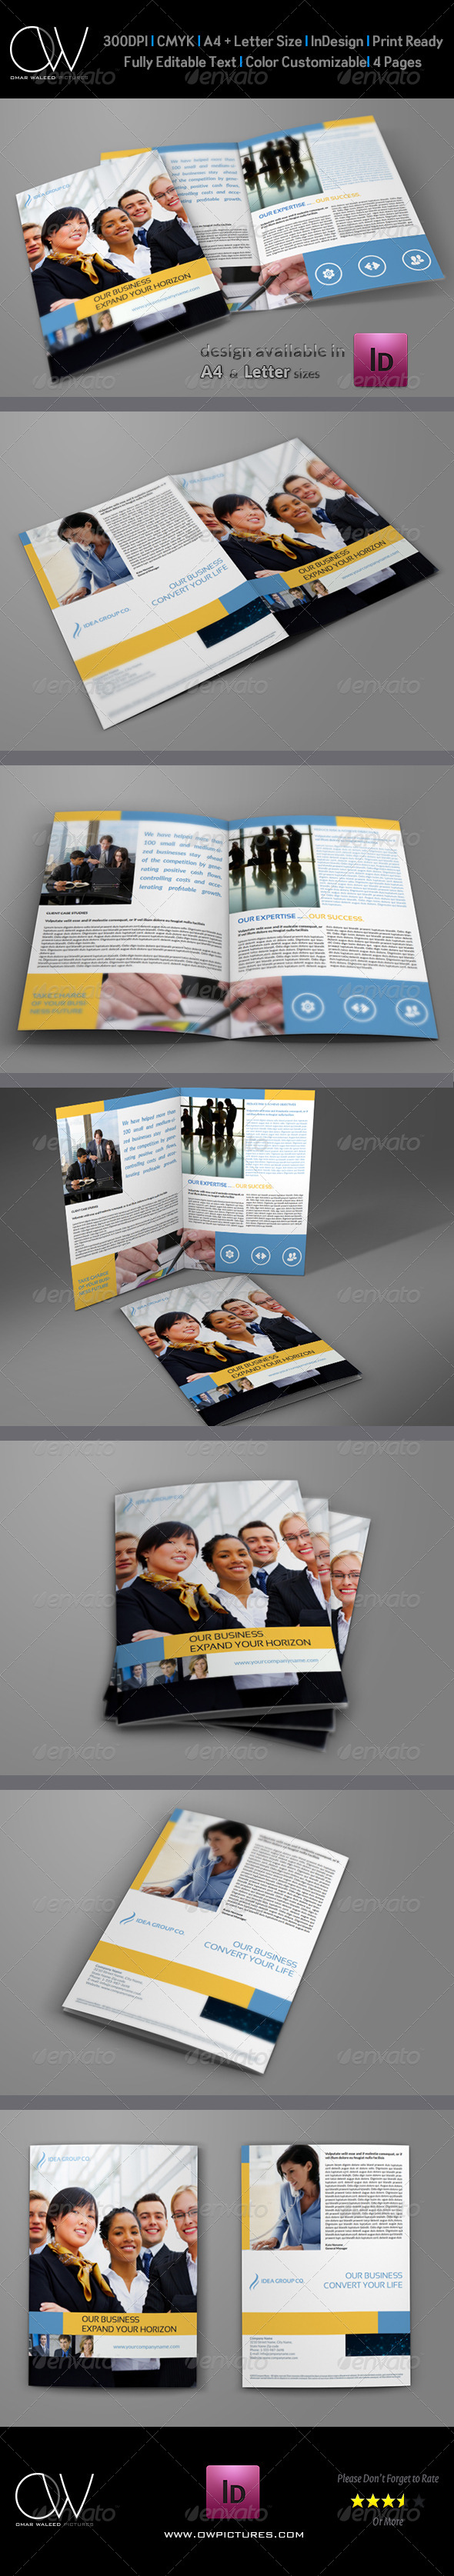 GraphicRiver Company Brochure Bi-Fold Template Vol.11 6395254